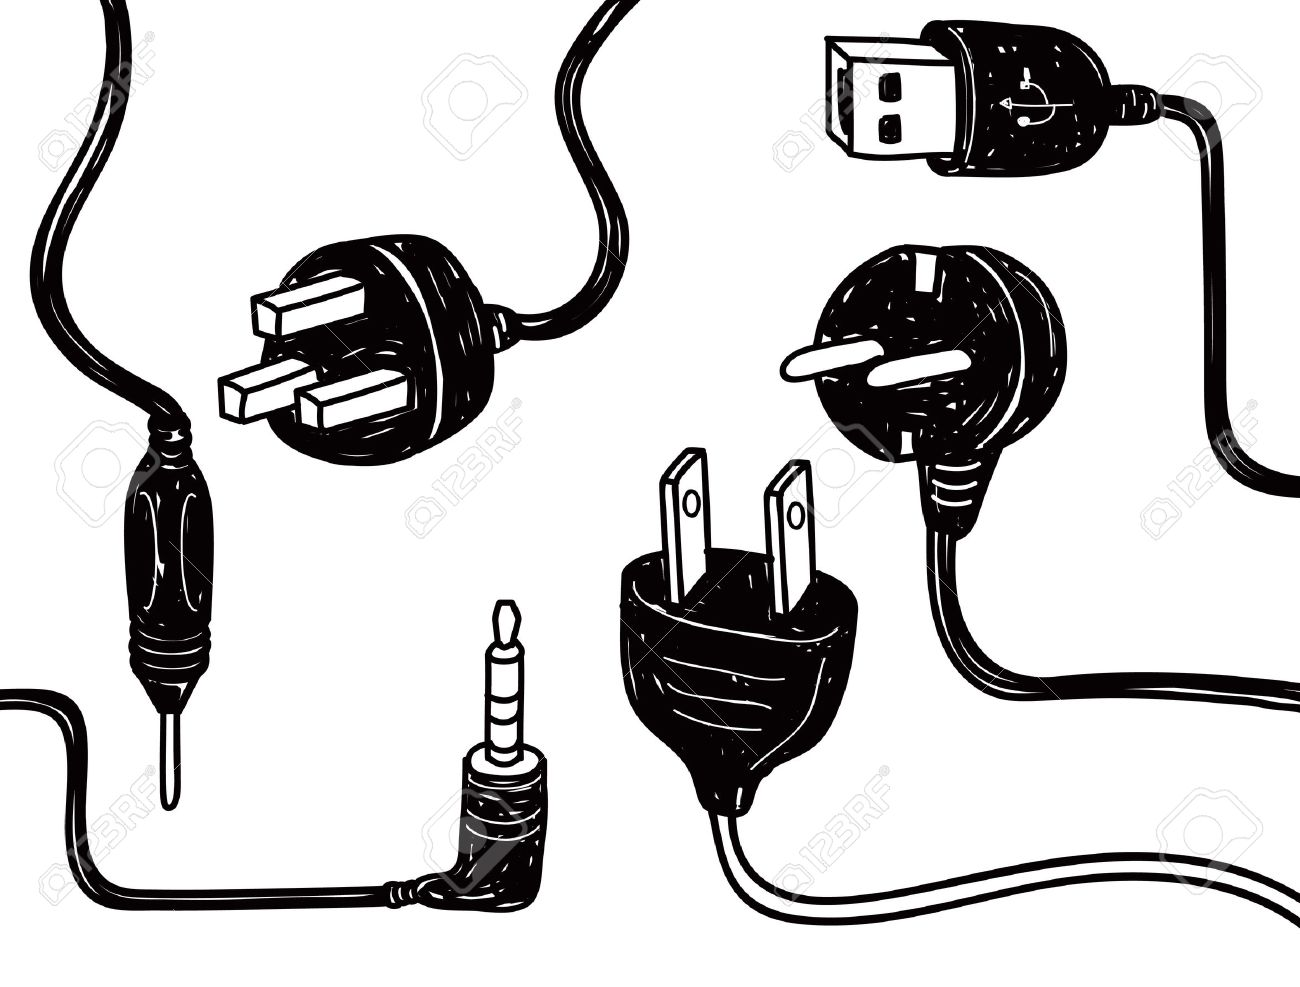 Electricity Cord Doodle Royalty Free Cliparts, Vectors, And Stock.